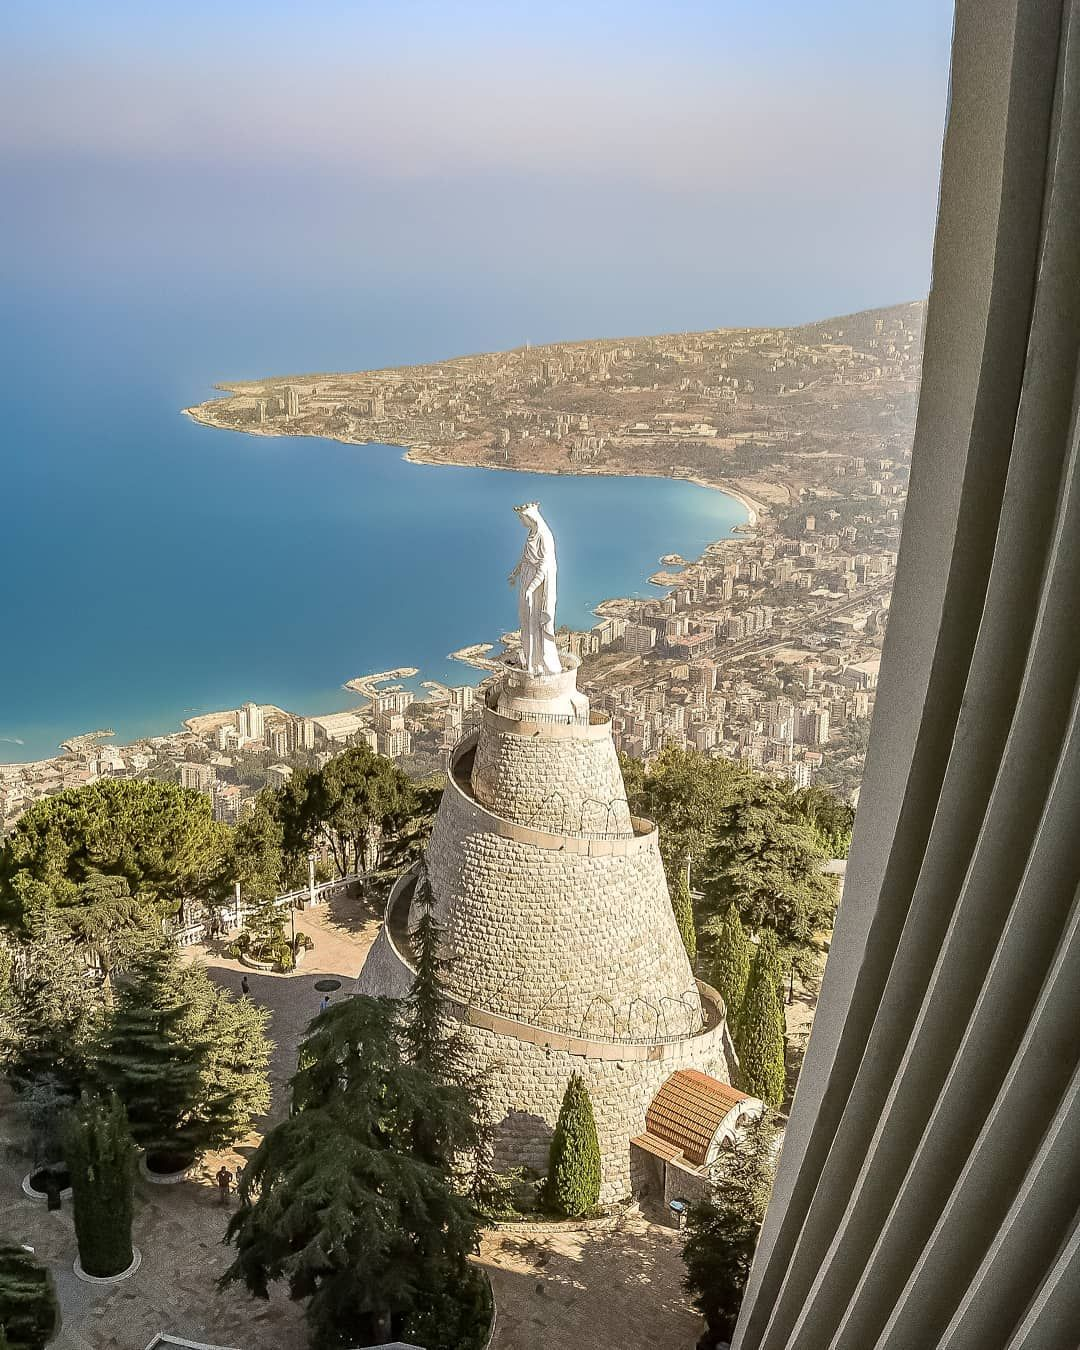 Queen Marie Harissa Lebanon Sky Outdoor And Nature Lebanon Beirut Lebanon Beautiful Places